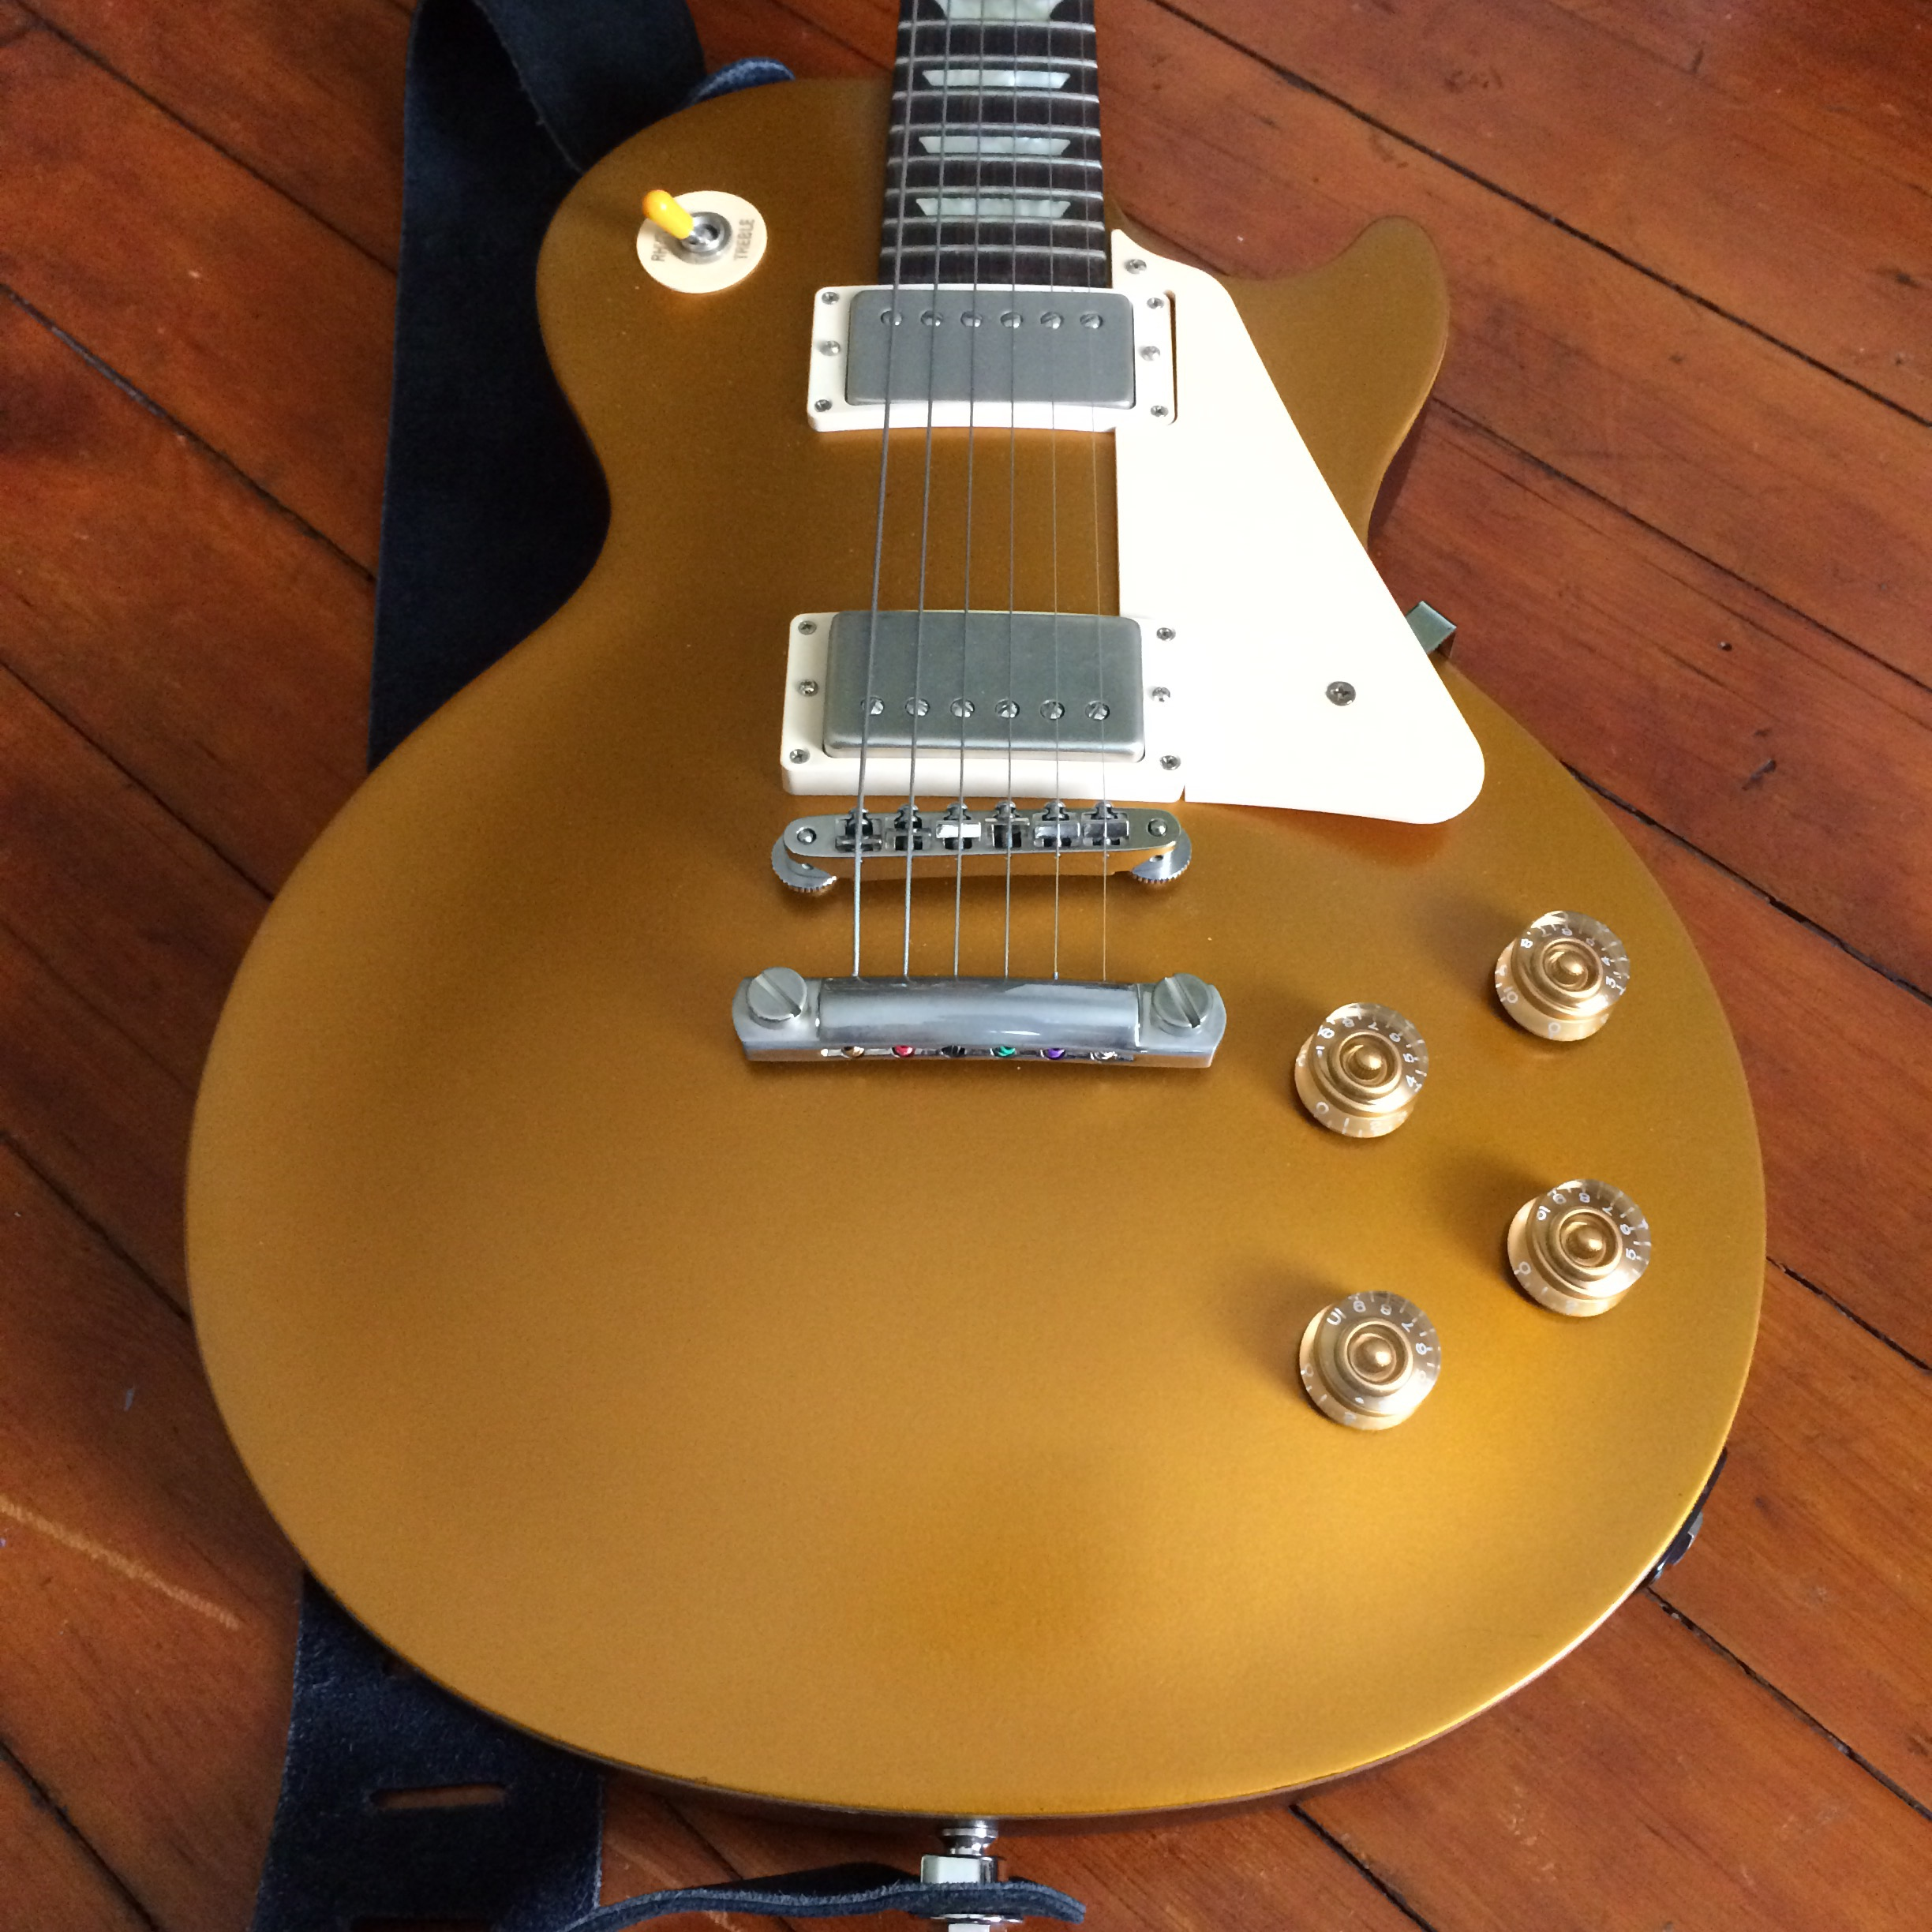 Steven Queen City Guitar Epiphone Les Paul Custom Here Is An Example Of Modern And 50 S Wiring Players That I Know For Their Opinions Im Hoping Some Blindfold Taste Tests Will Post Update On The Results As Soon Possible